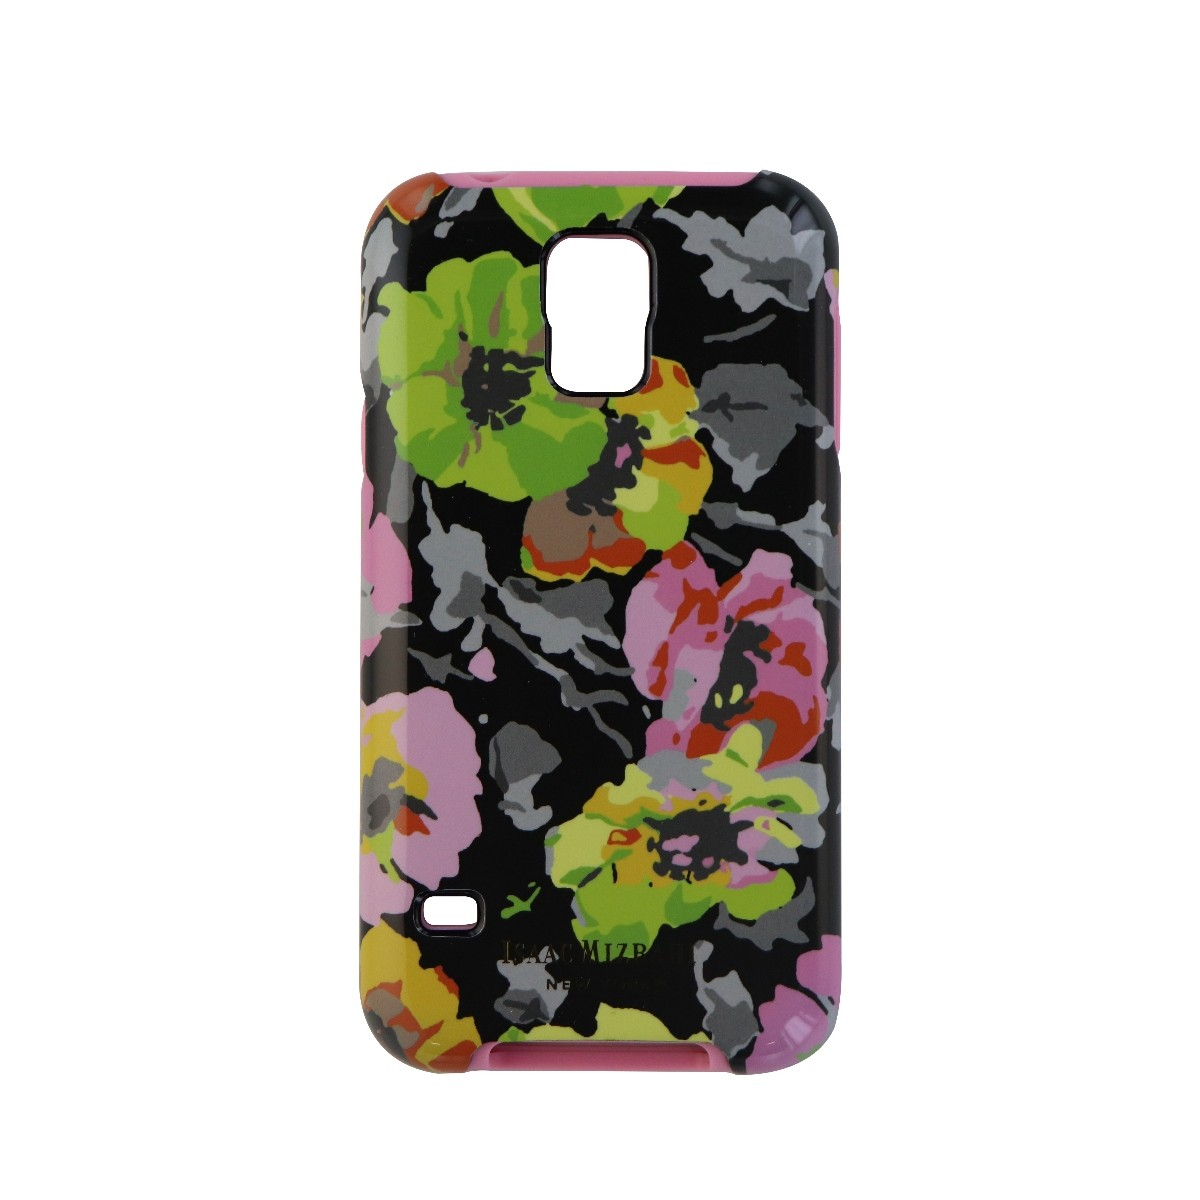 Isaac Mizrahi New York Series Protective Case Cover for Galaxy S5 - Black Flower